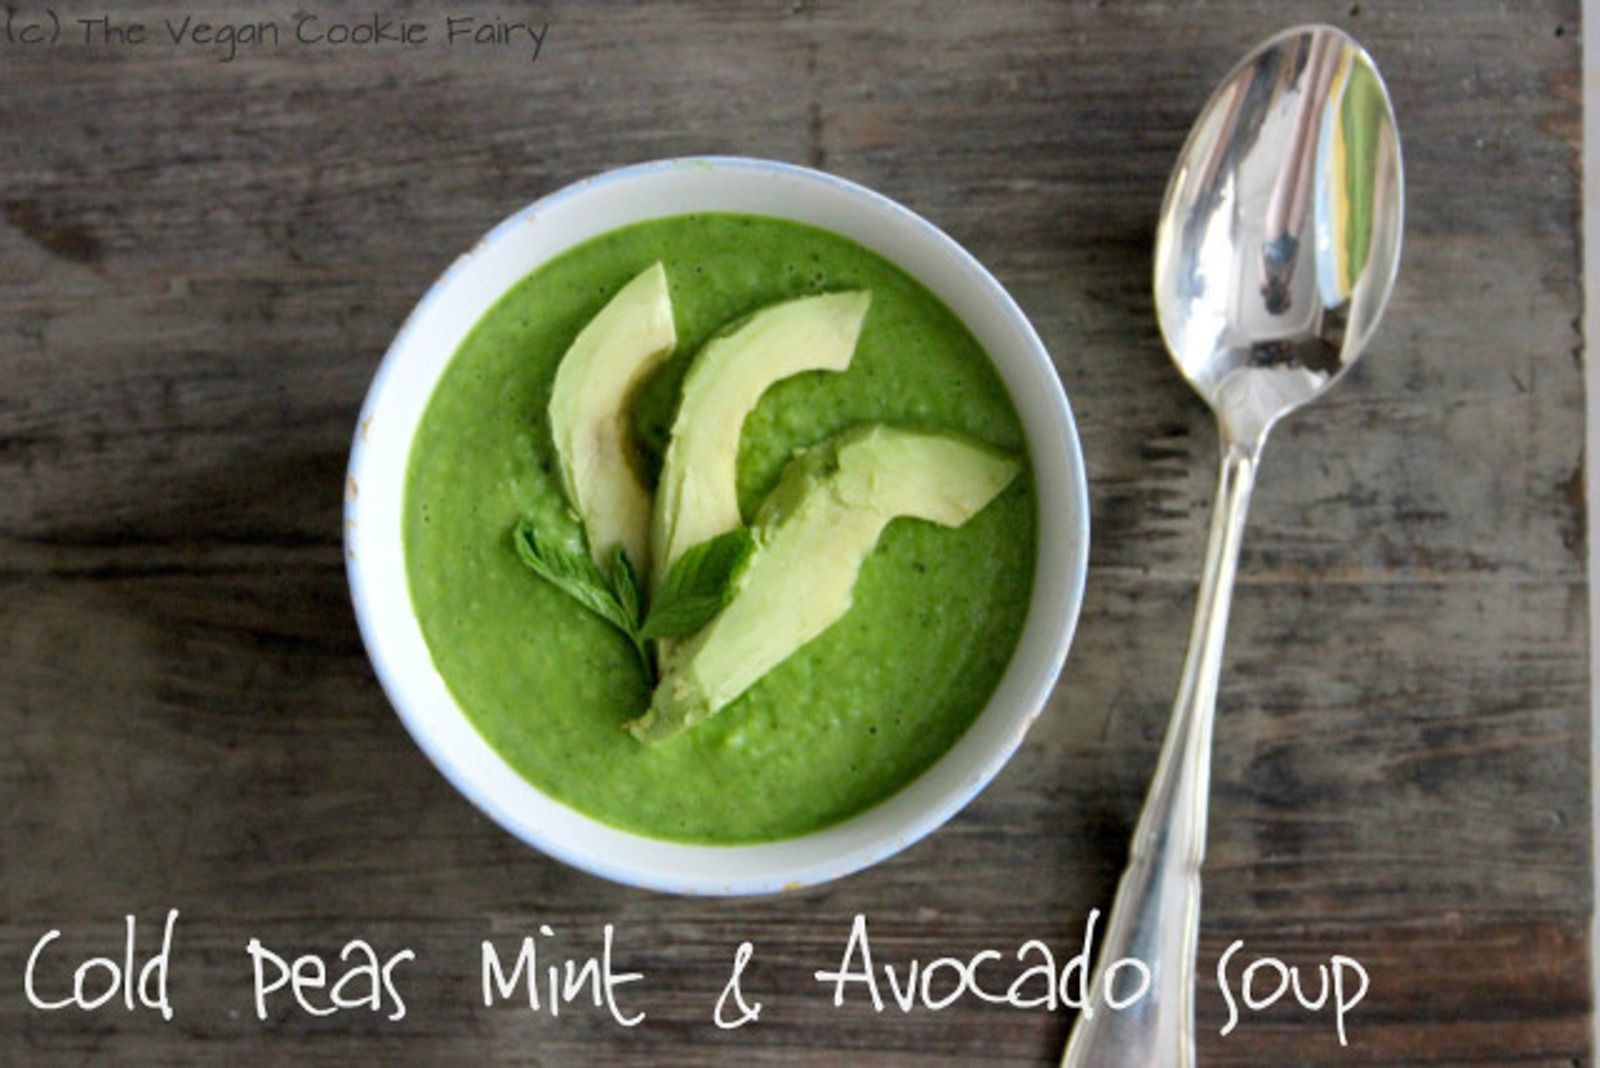 This raw soup of peas, mint, and avocado will make any raw food fiend love it.